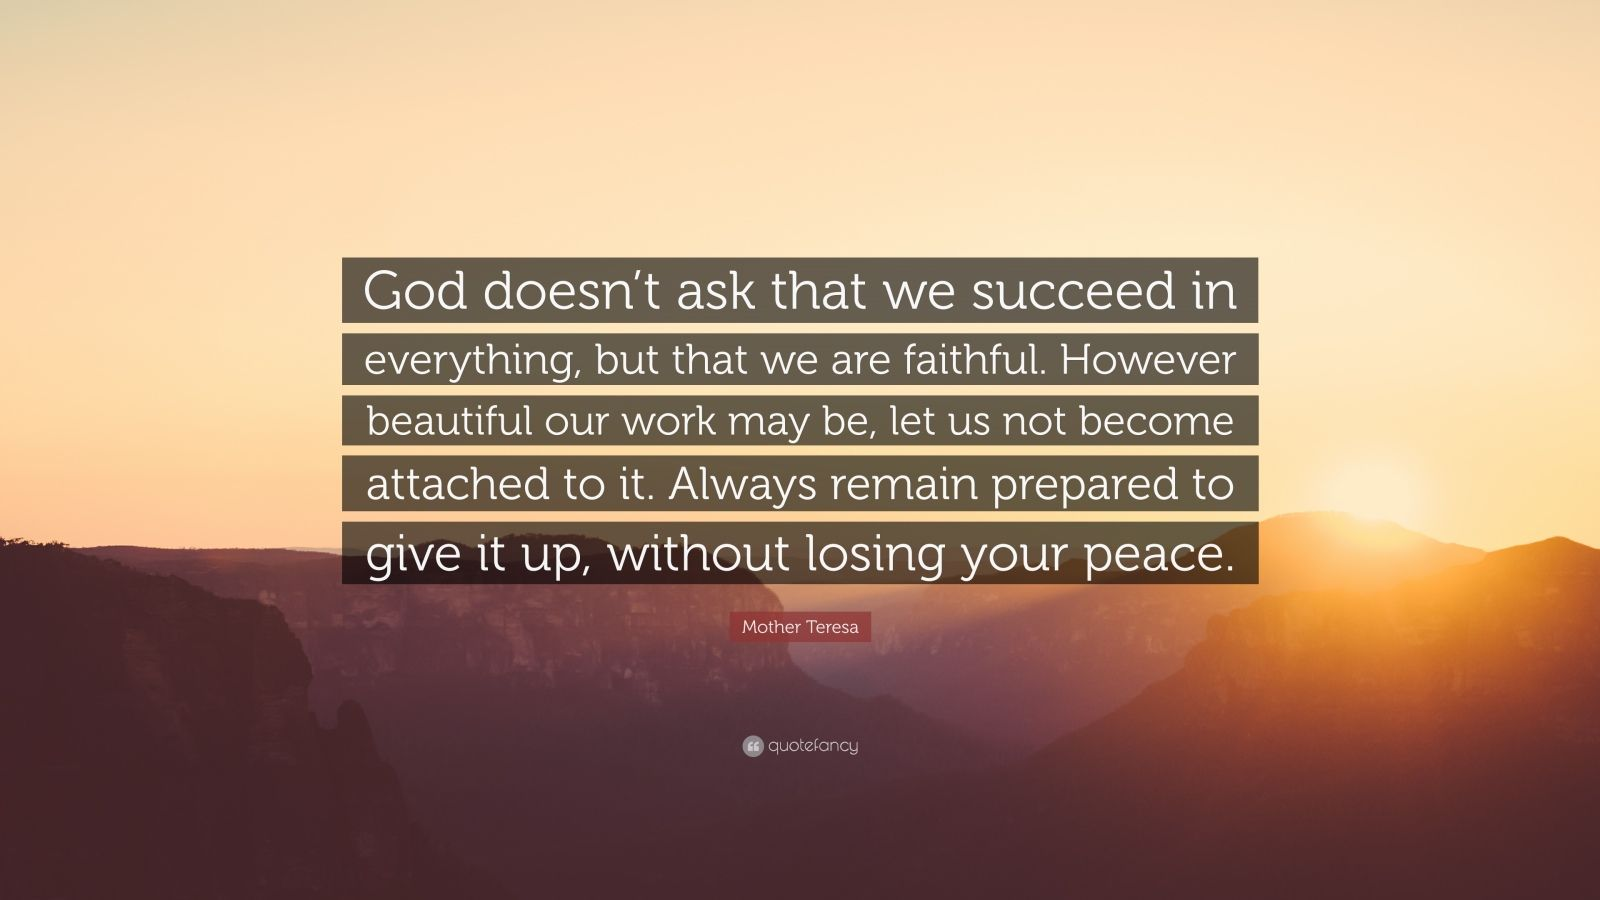 """Mother Teresa Quote: """"God doesn't ask that we succeed in everything, but that we are faithful. However beautiful our work may be, let us not become attached to it. Always remain prepared to give it up, without losing your peace."""""""